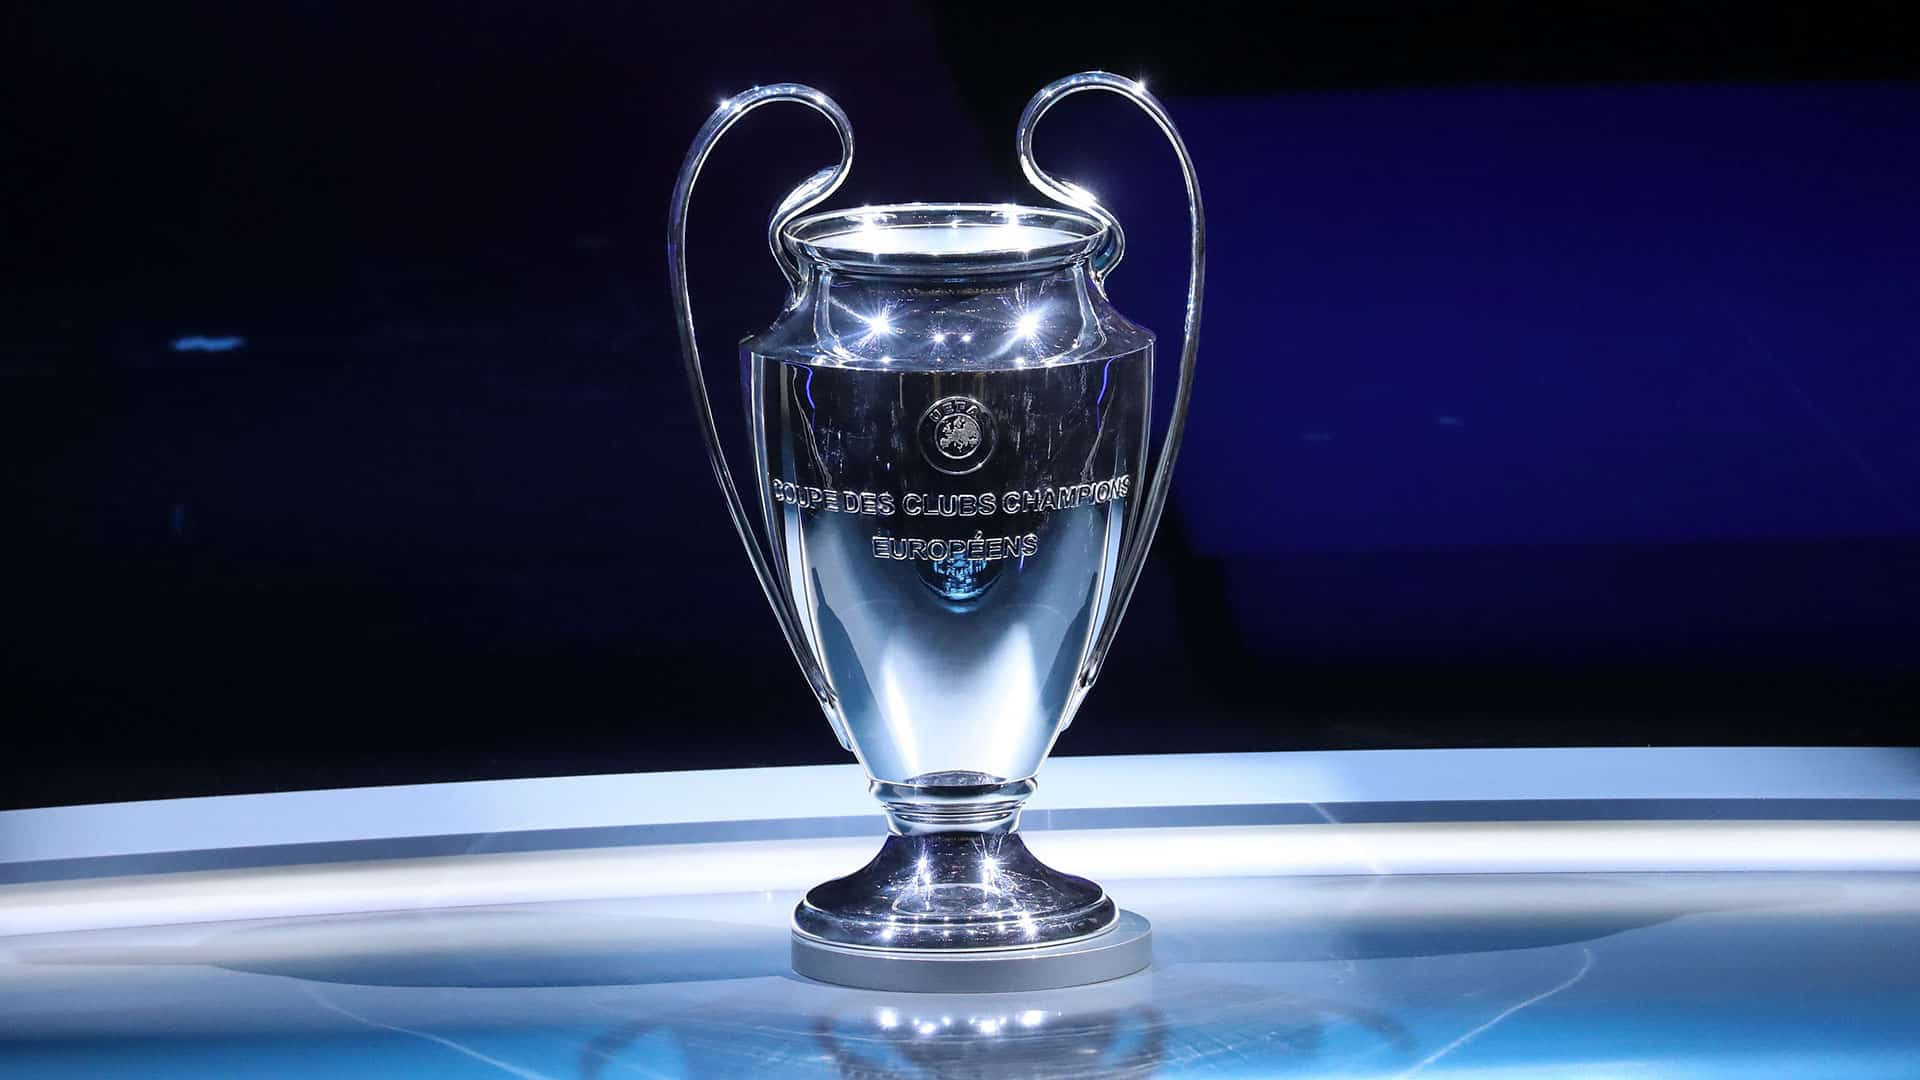 04/05/2021 Daily Predictions: UEFA Champions League – Manchester City vs PSG